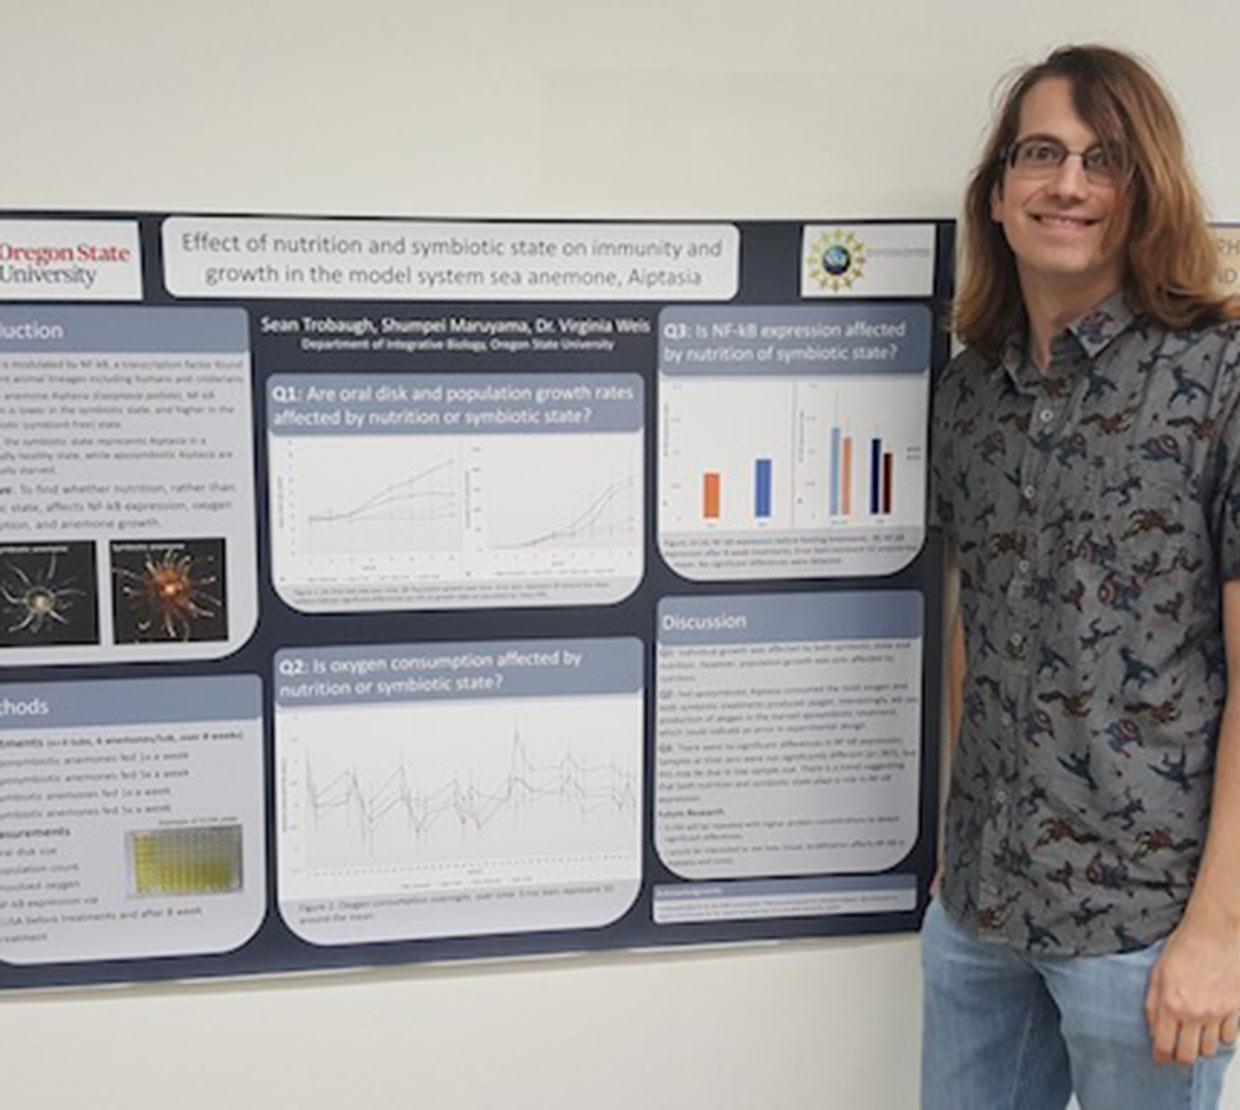 Sean Trobaugh in front of research poster